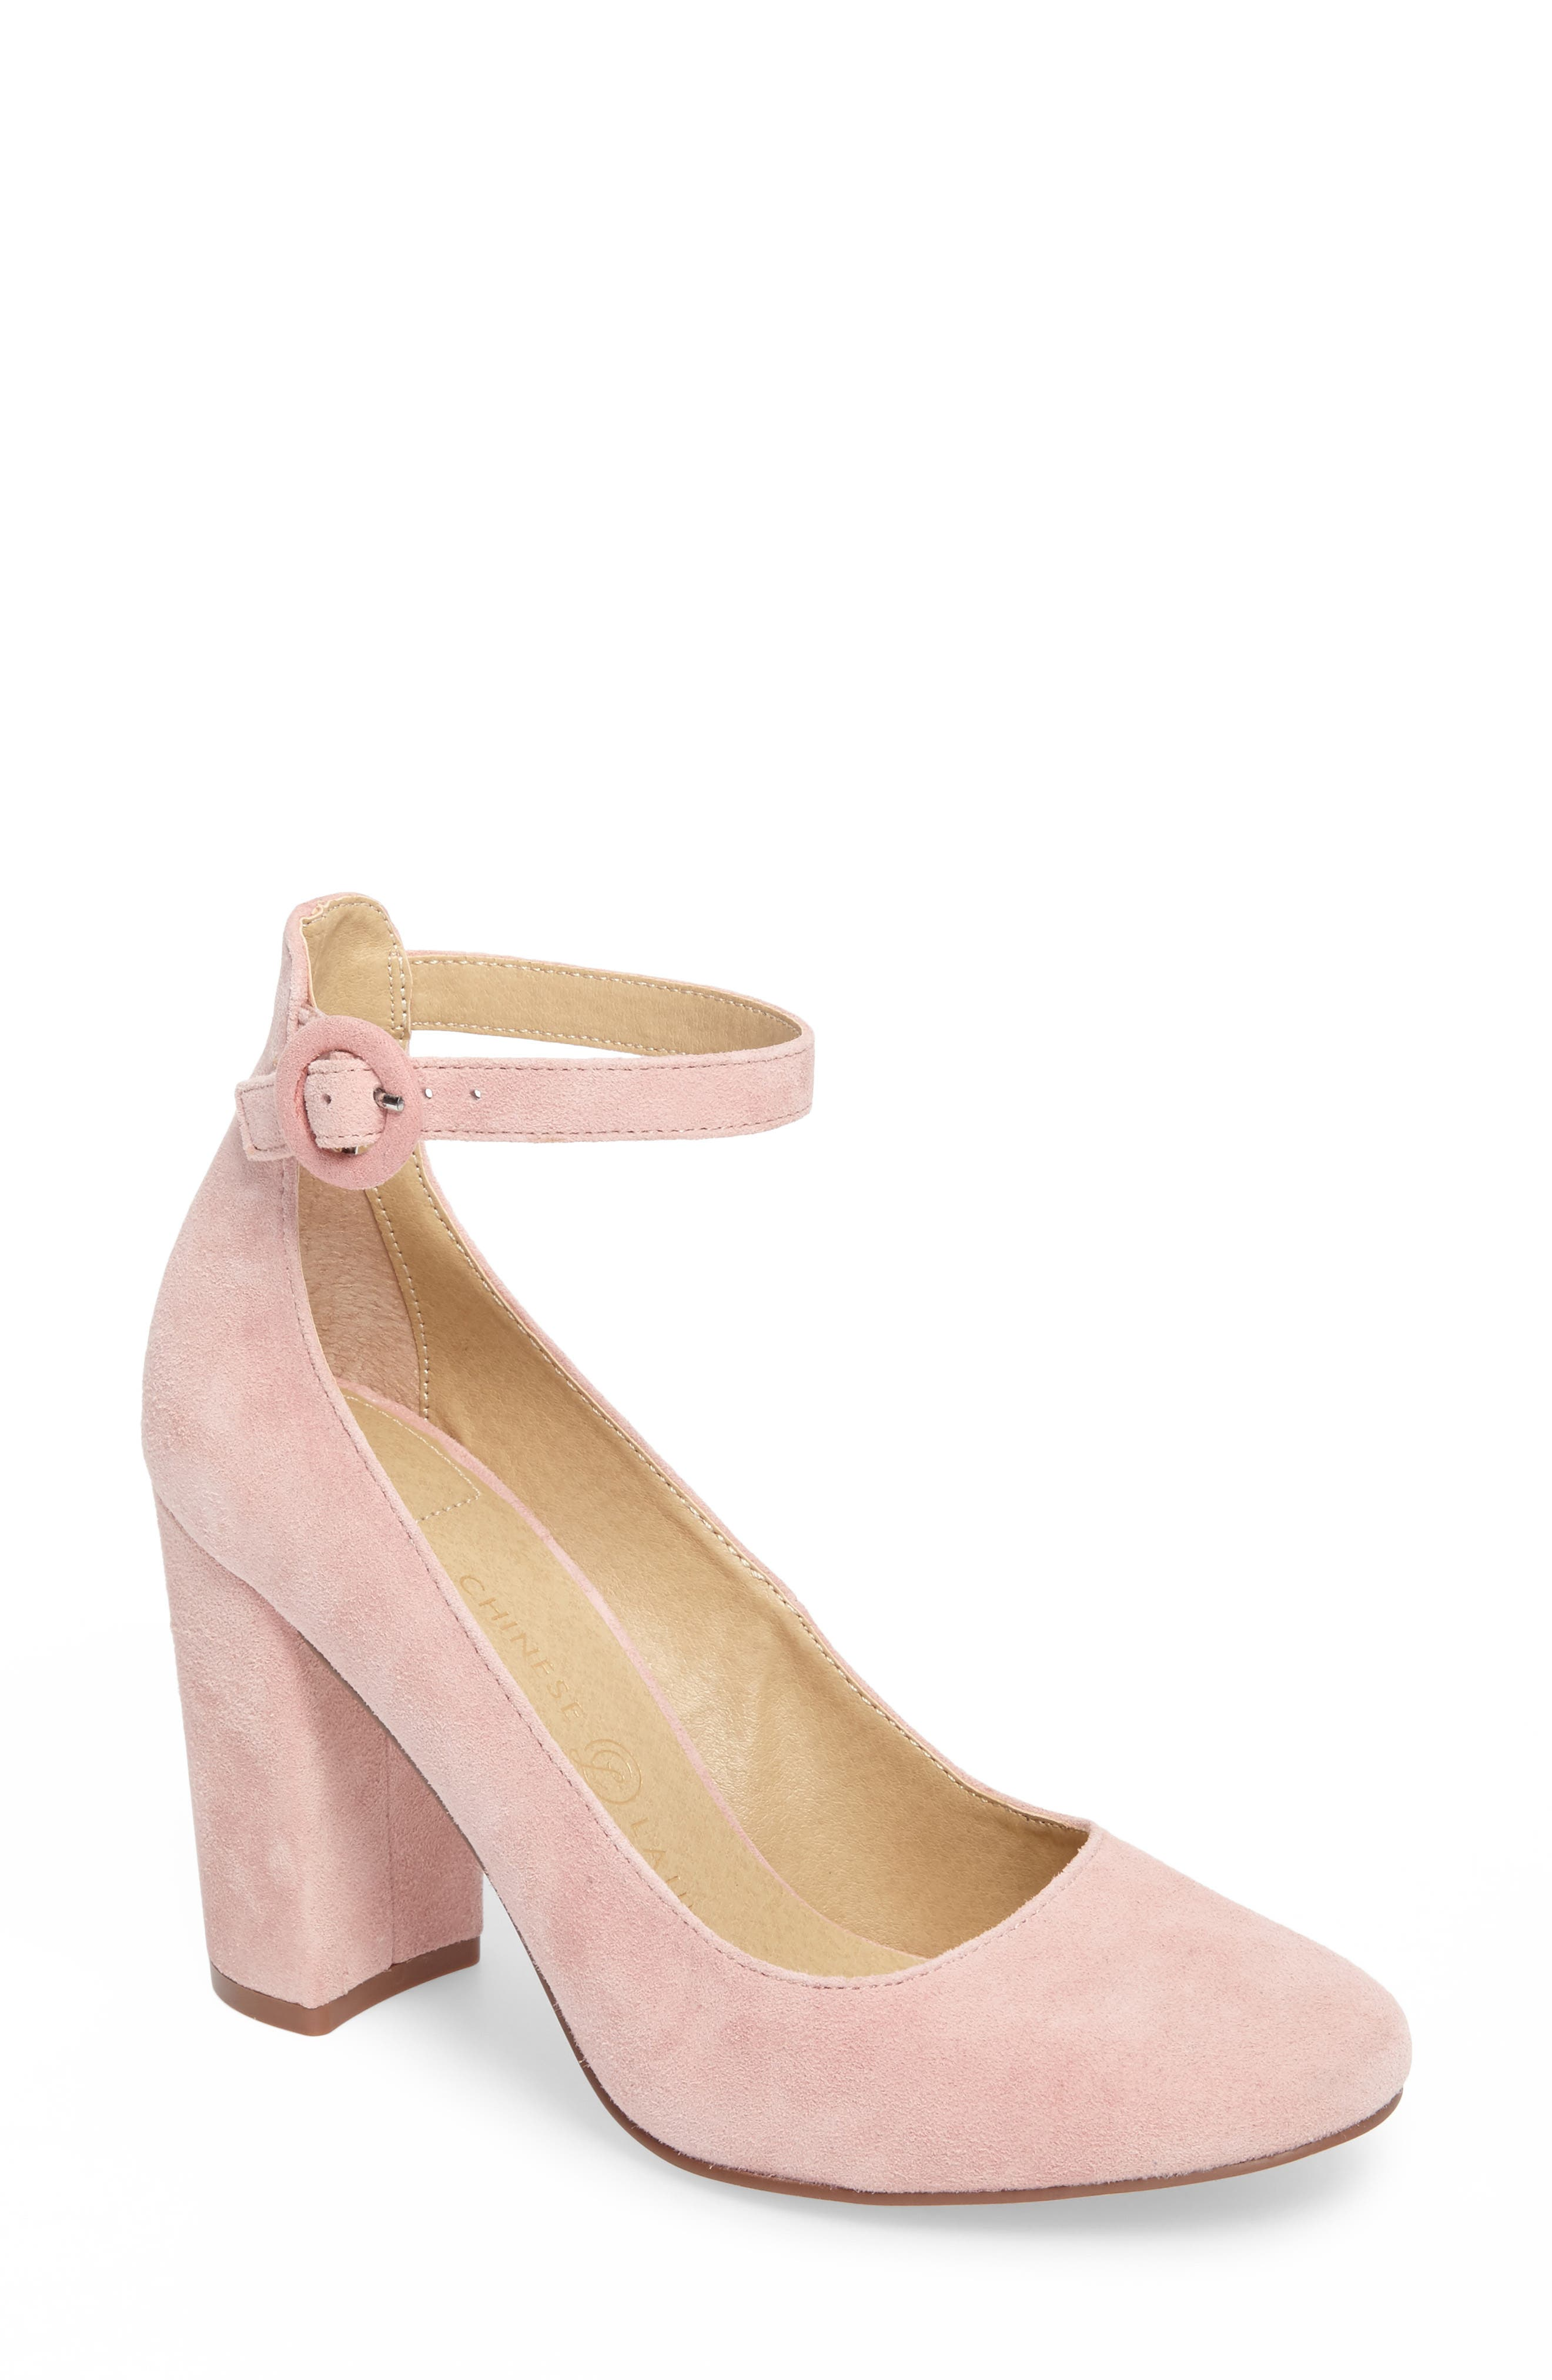 Veronika Pump,                         Main,                         color, Rose Suede